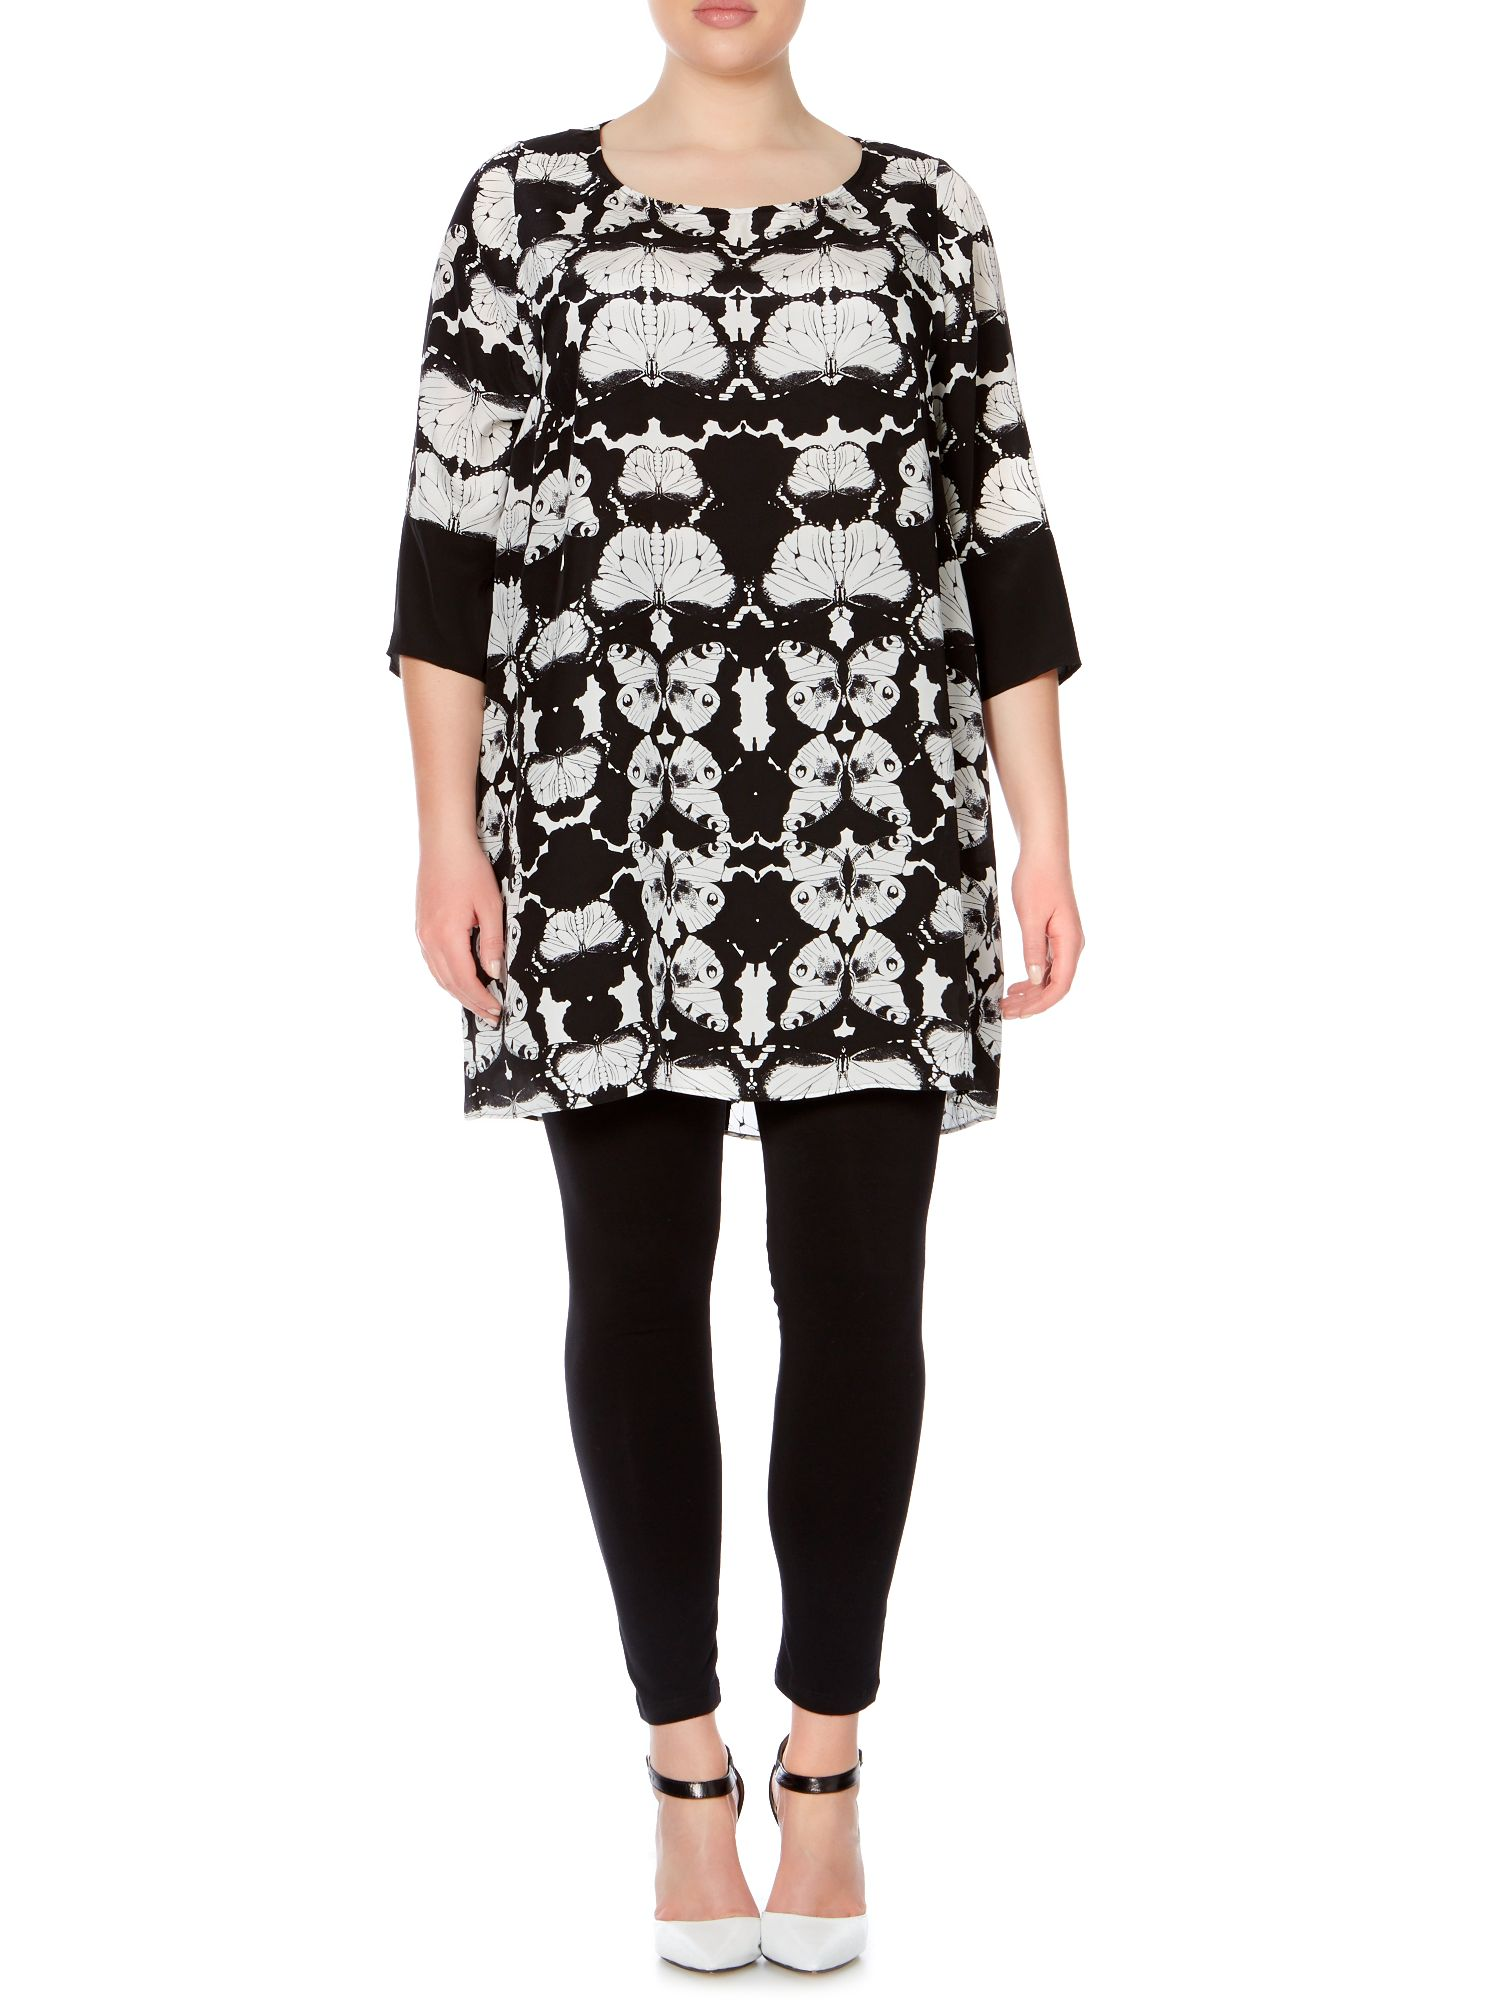 3/4 sleeve silk butterfly print tunic top